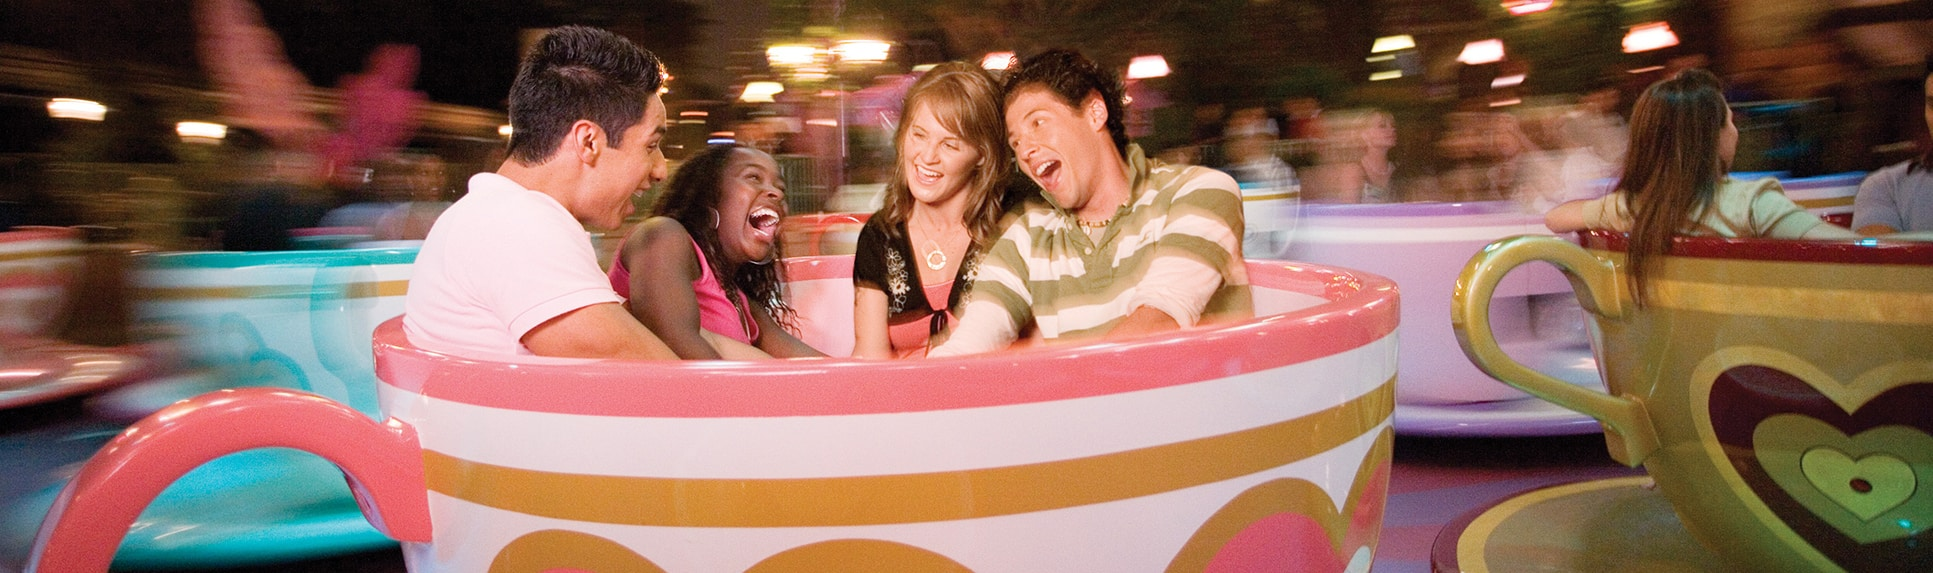 Smiling people spinning on the Mad Tea Party attraction teacups in the evening